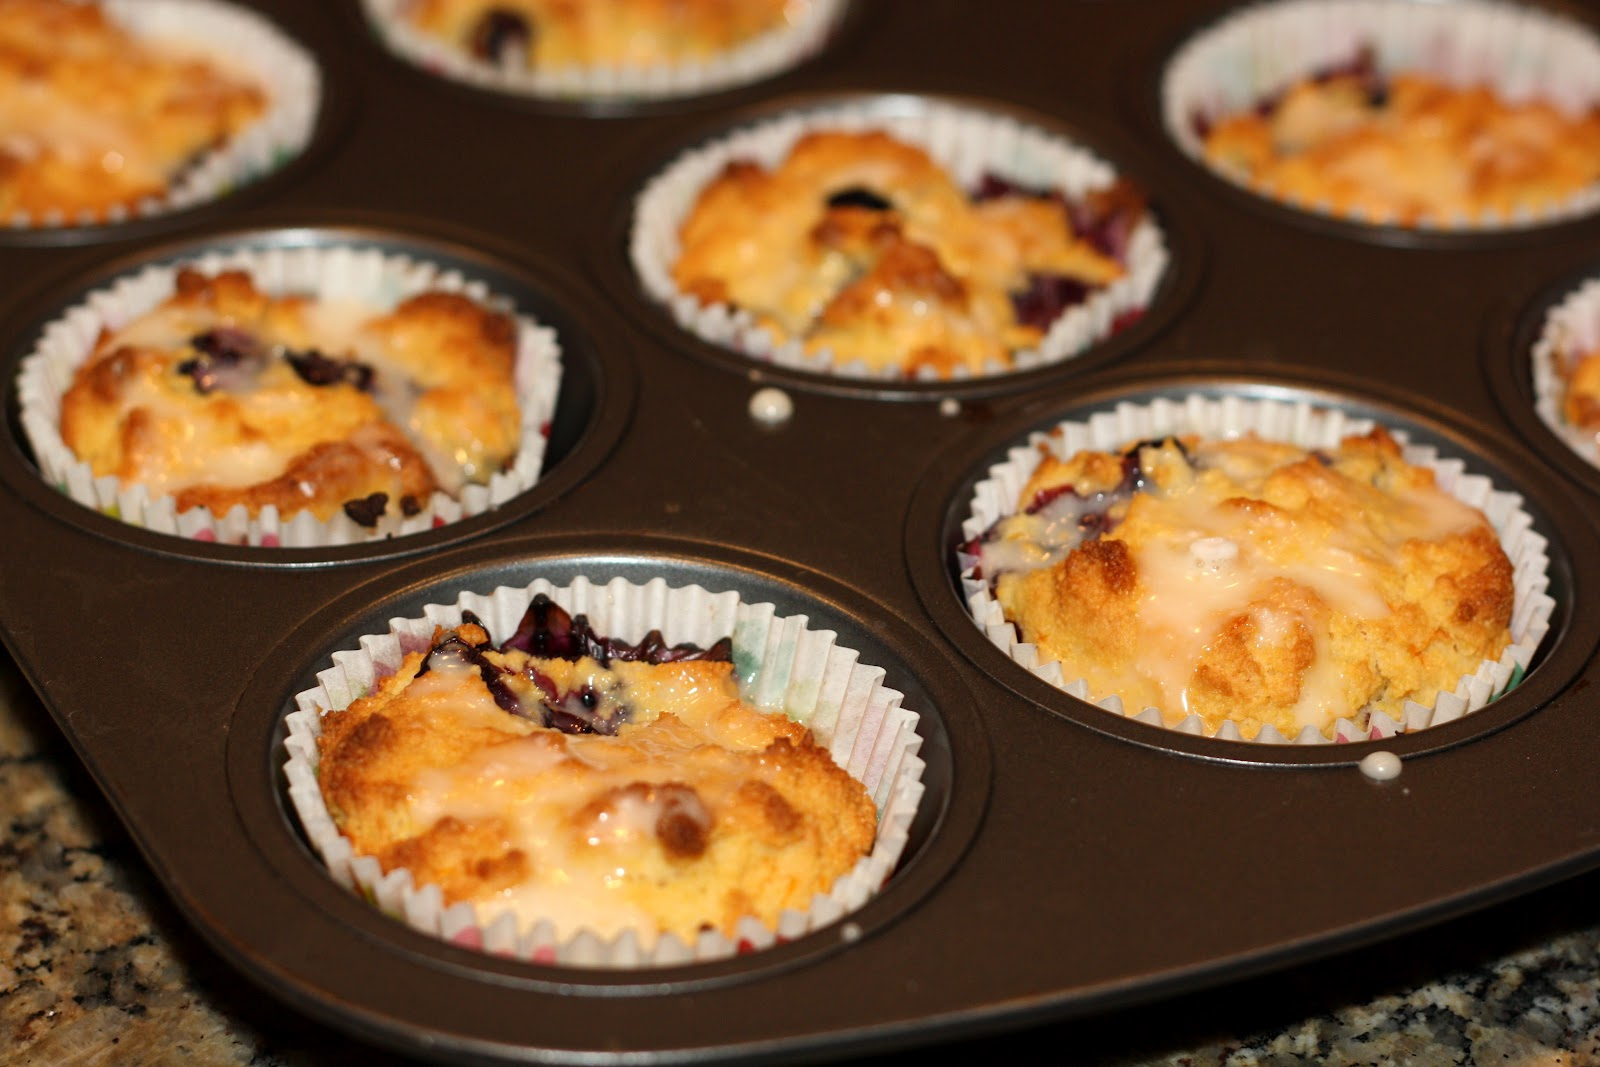 sunday sweets: blueberry-orange cornmeal muffins